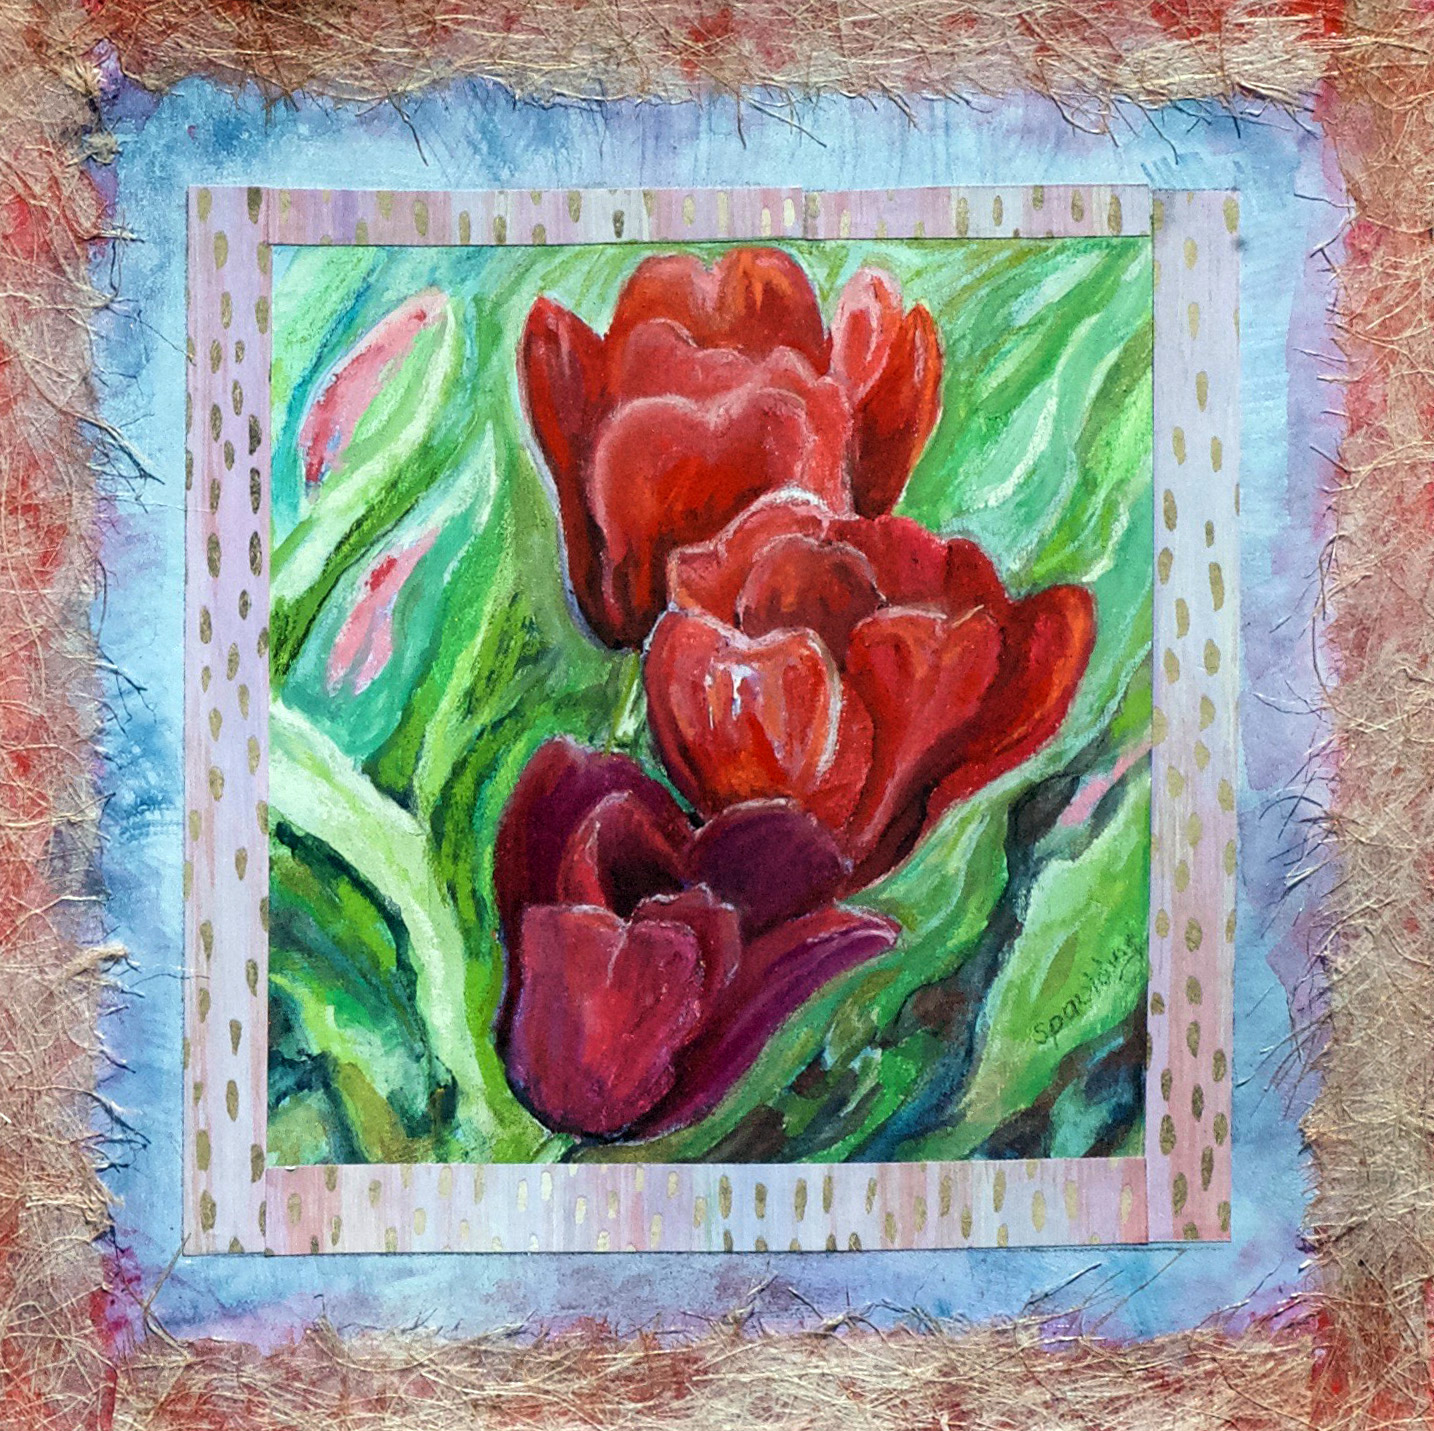 Red Tulips for True Love, Pastel with Collage